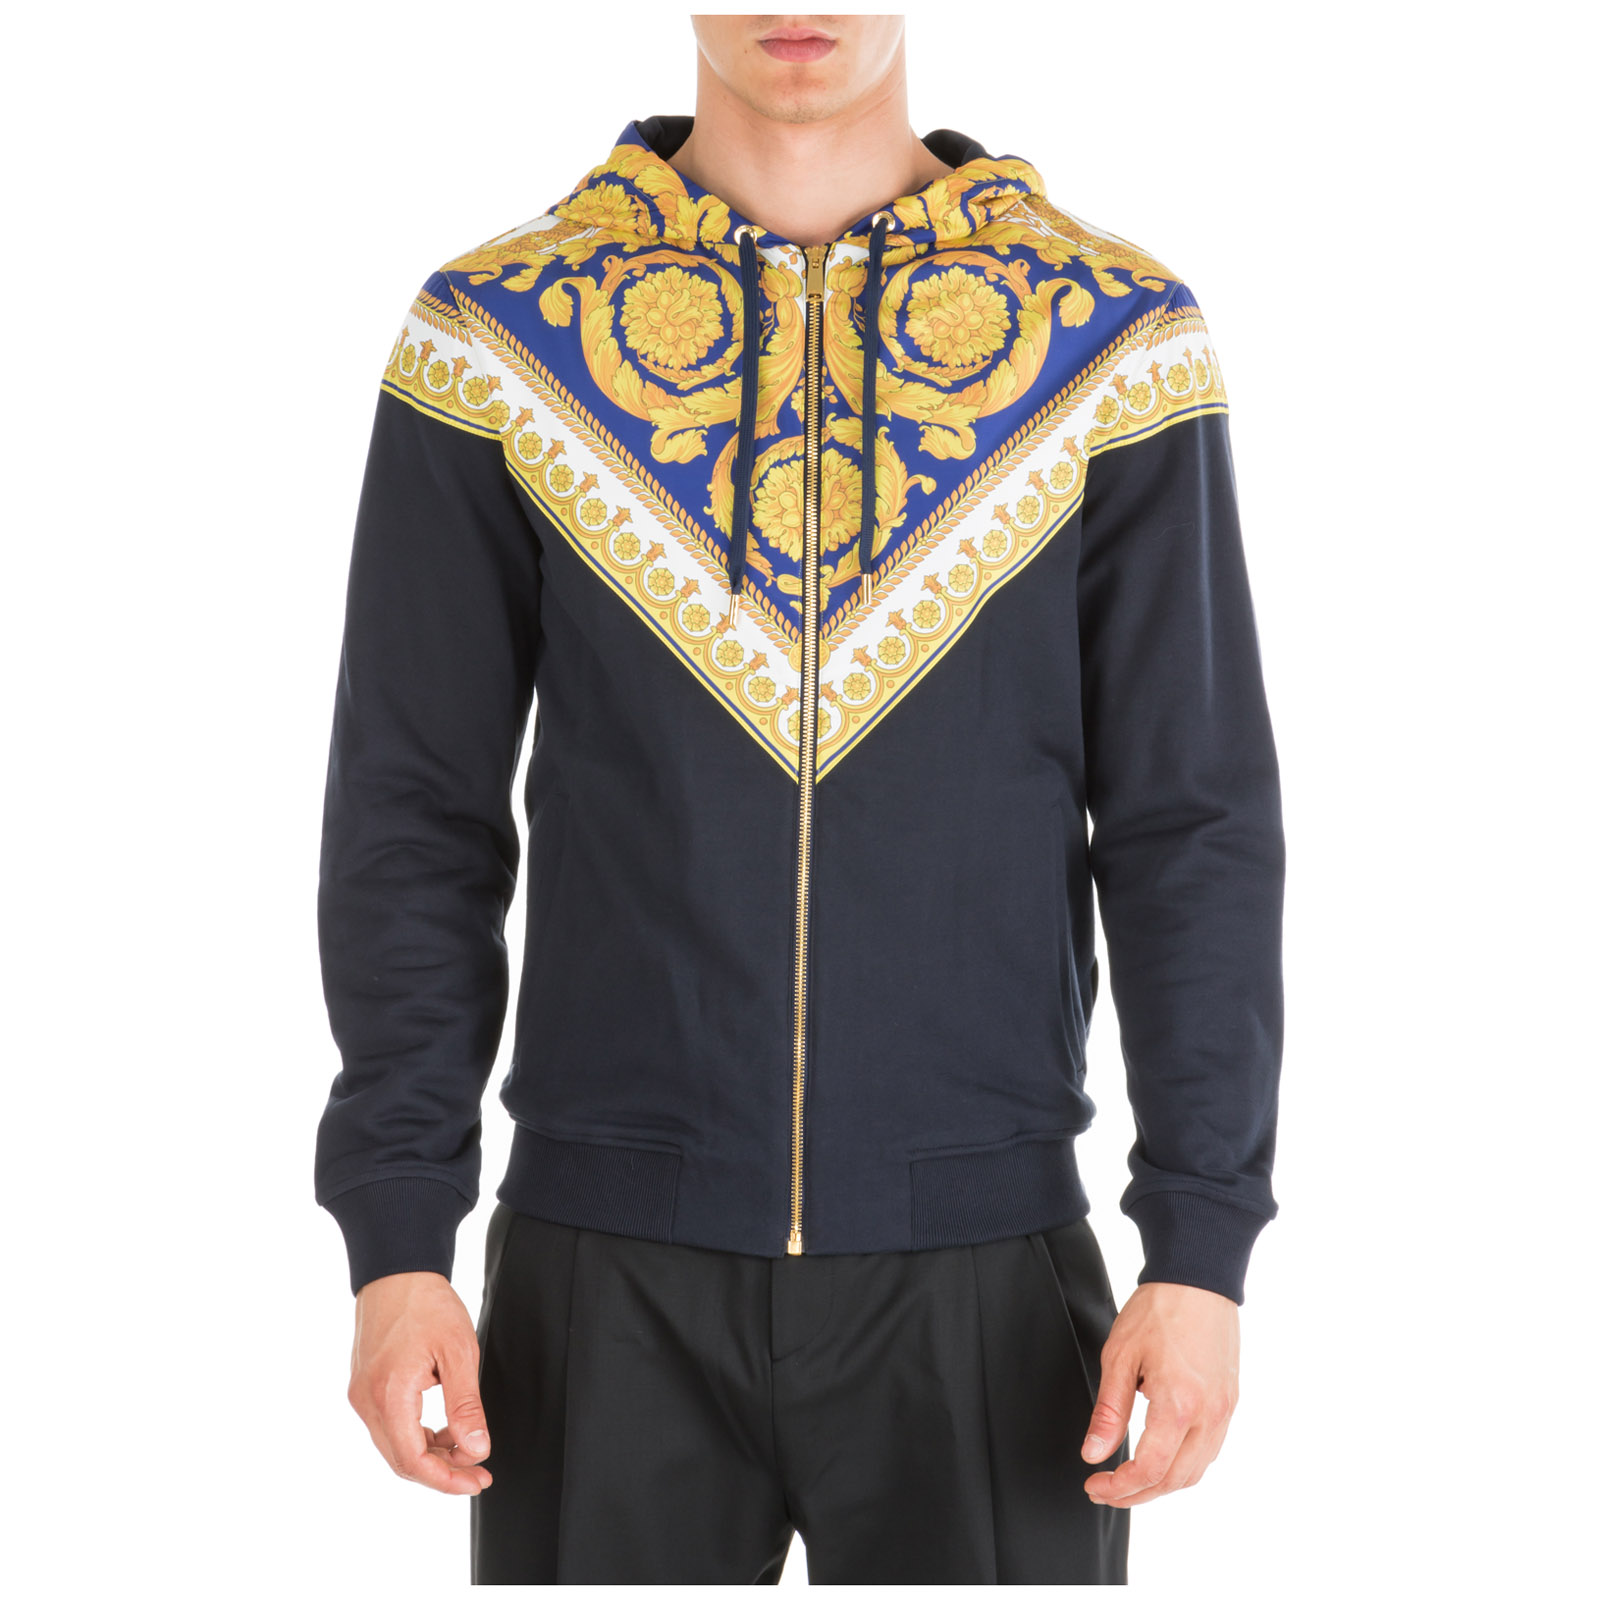 71a70c5a1f Men's Sweatshirt With Zip Sweat Gold Barocco in Black